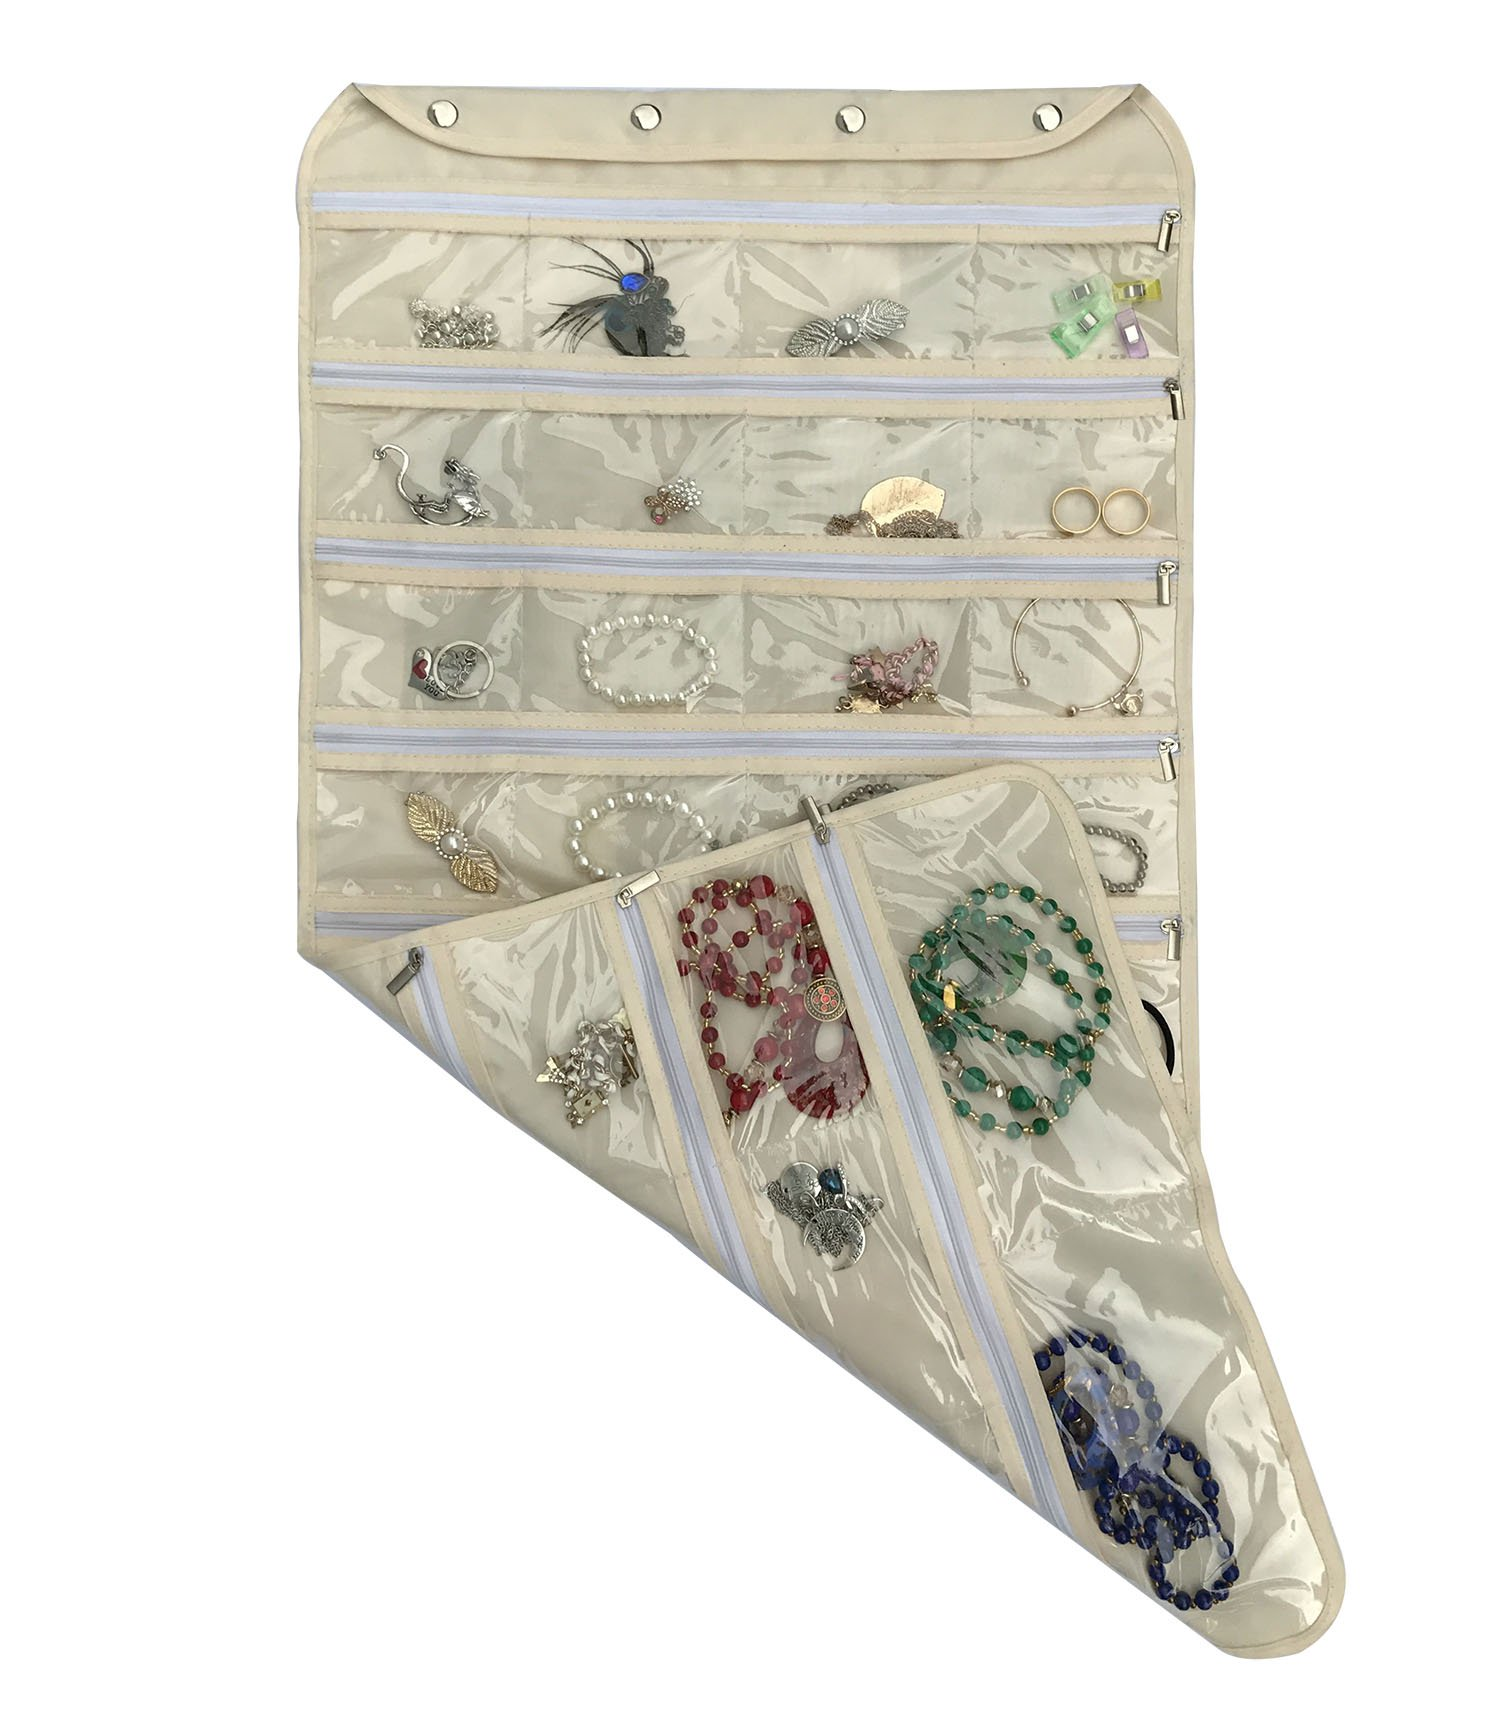 brotrade Hanging Jewelry Organizer with Oxford Dual Side 56 Zippered Storage Pocket